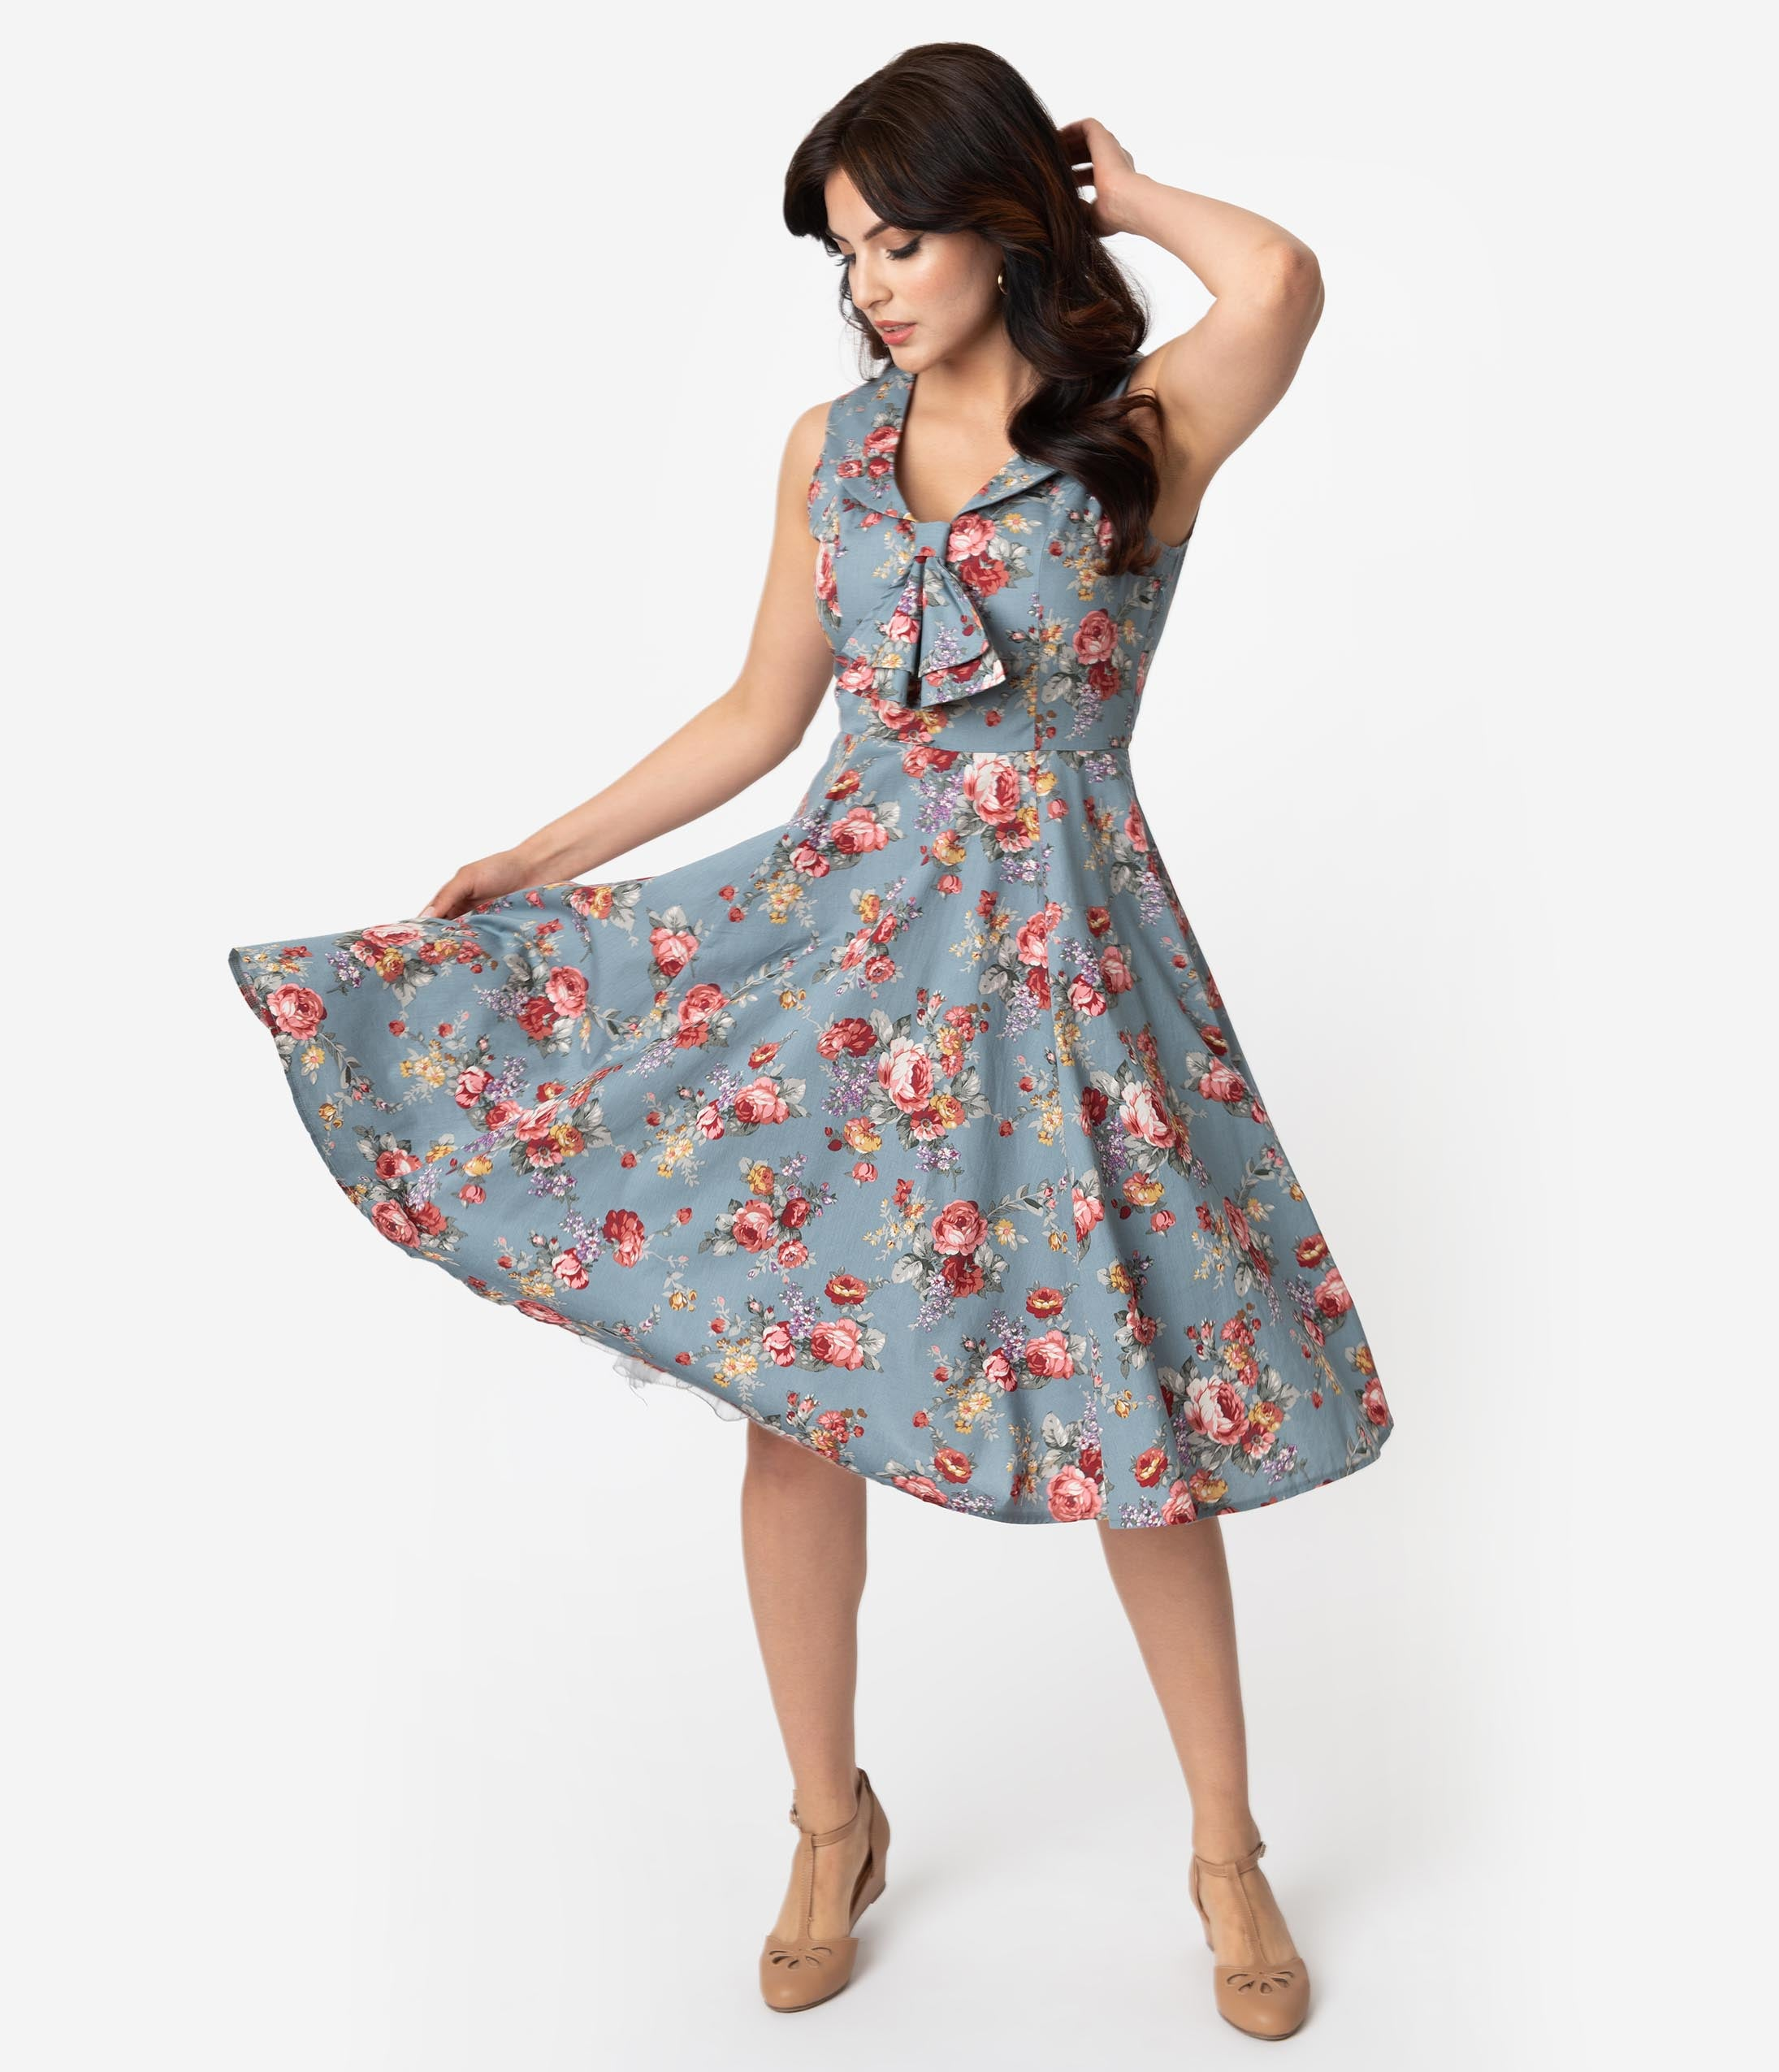 Swing Dance Clothing You Can Dance In 1940S Style Vintage Blue  Pink Floral Cotton Sleeveless Swing Dress $58.00 AT vintagedancer.com